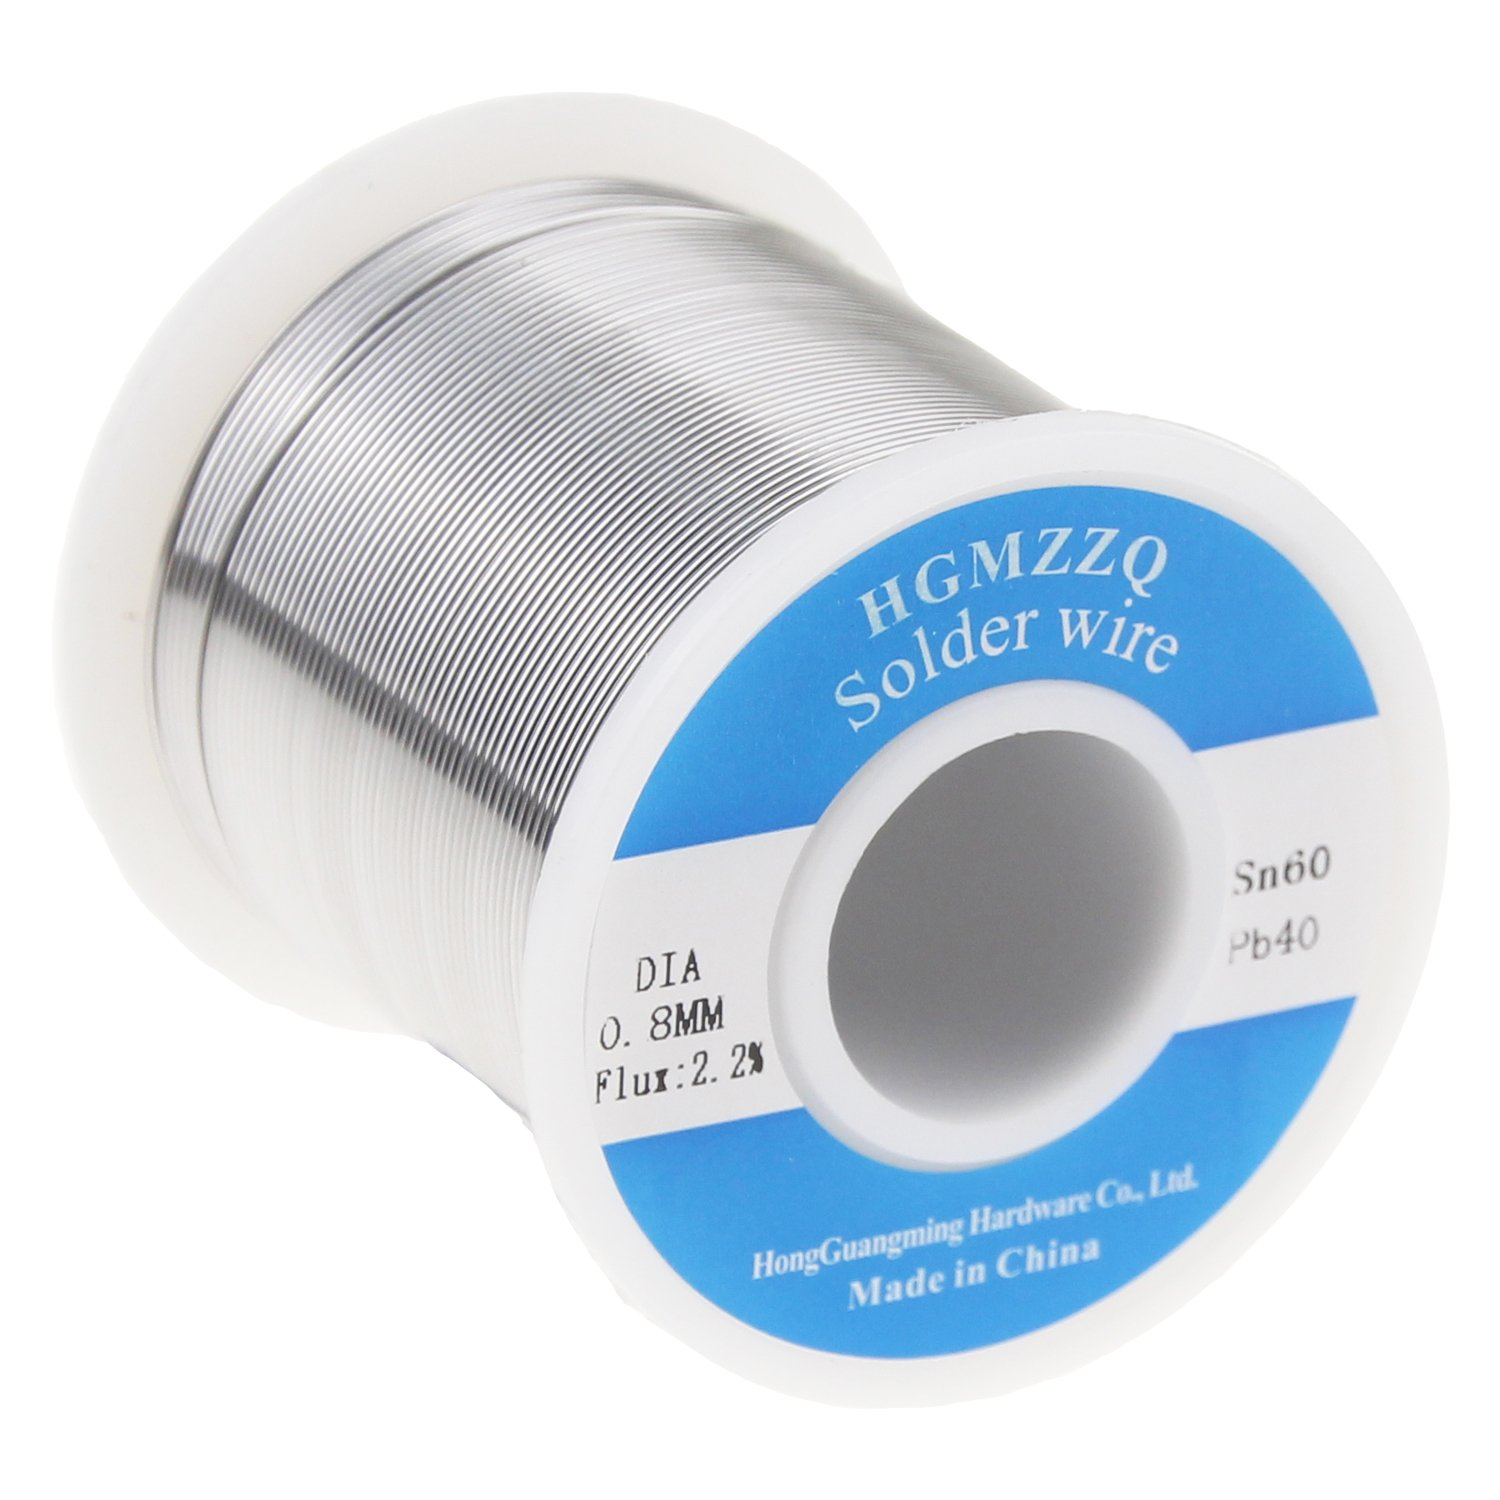 HGMZZQ 60/40 Tin Lead Solder Wire with Rosin for Electrical Soldering 0.031inch (0.8mm-1lb)